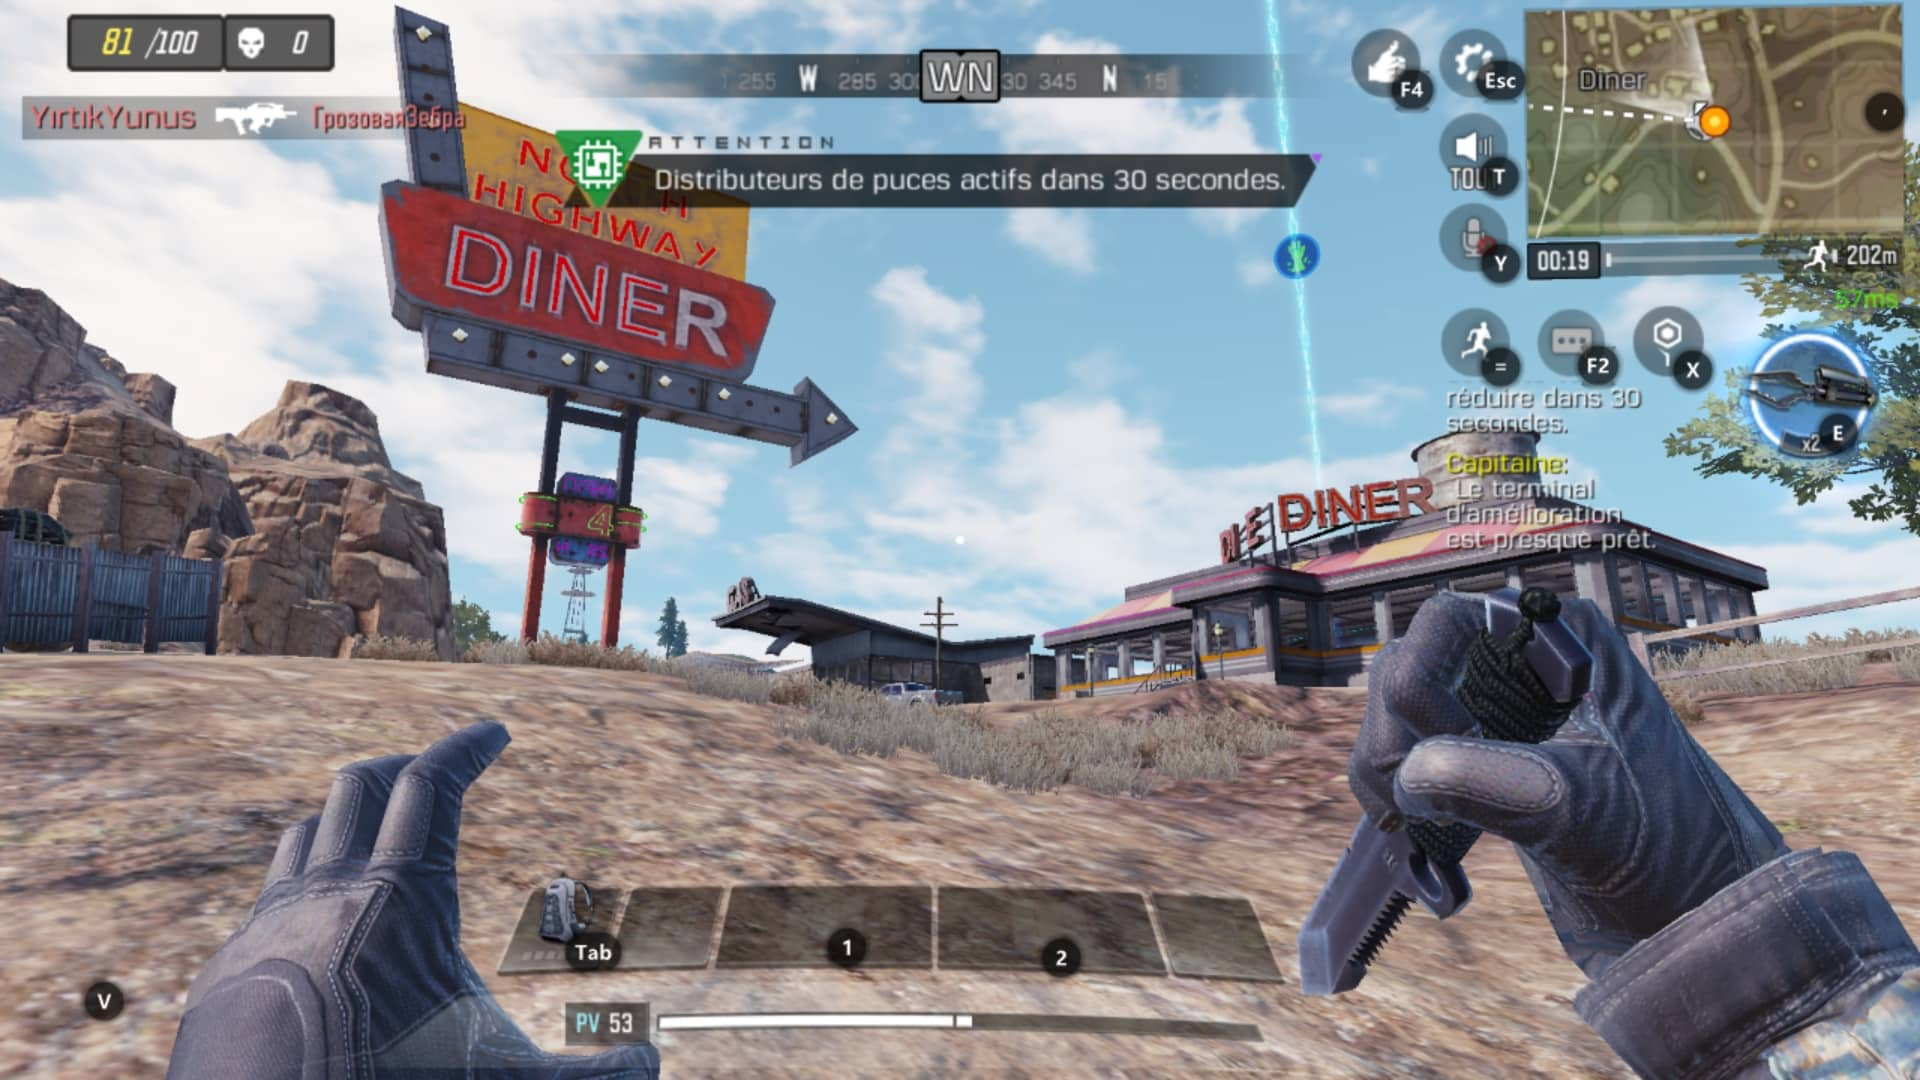 diner-ville-call-of-duty-mobile-carte-saison-1-isolated